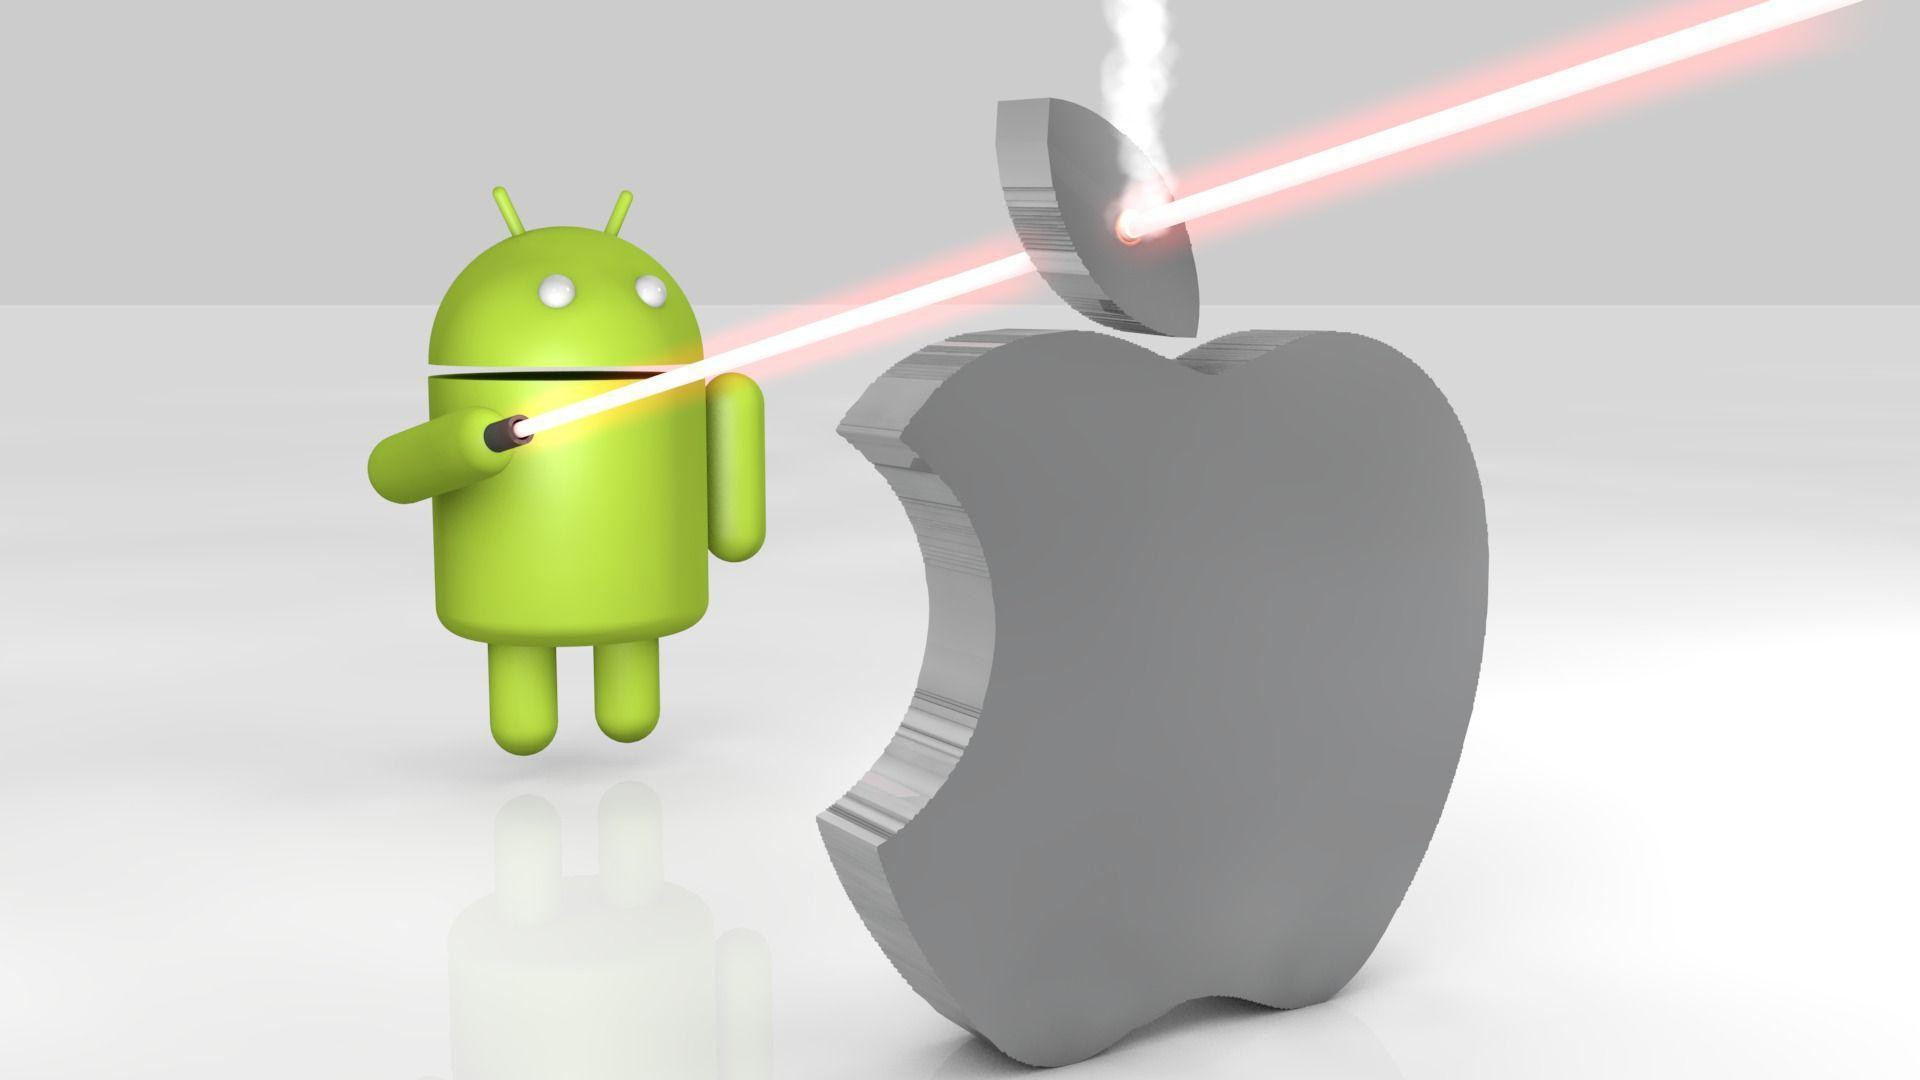 Android Apple Wallpaper: Apple Vs Android Wallpapers